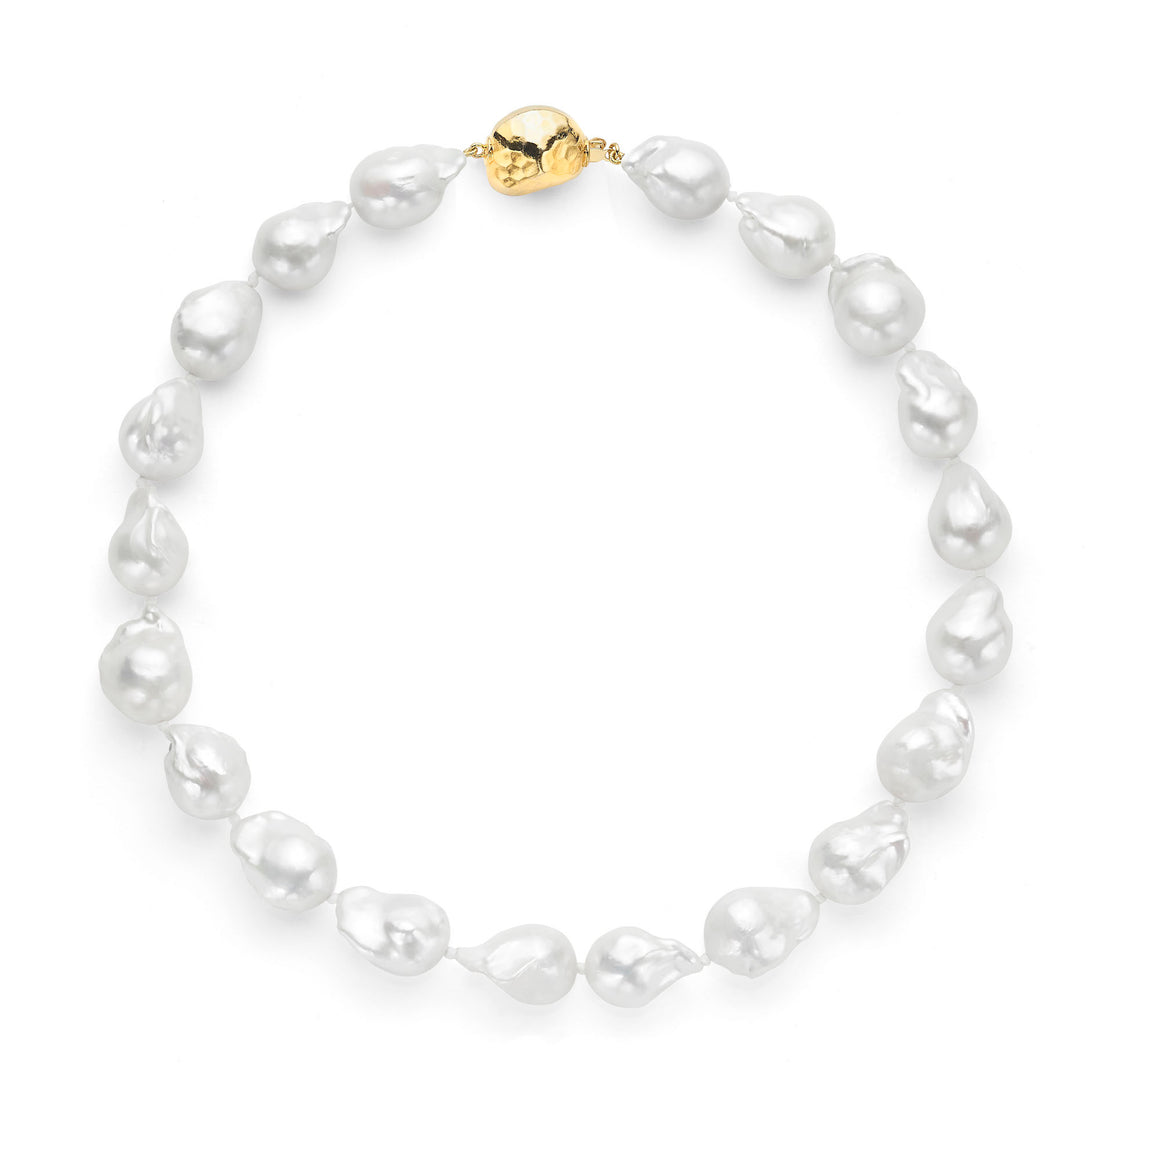 Les Trois Corniches Large White Baroque Freshwater Pearl Necklace